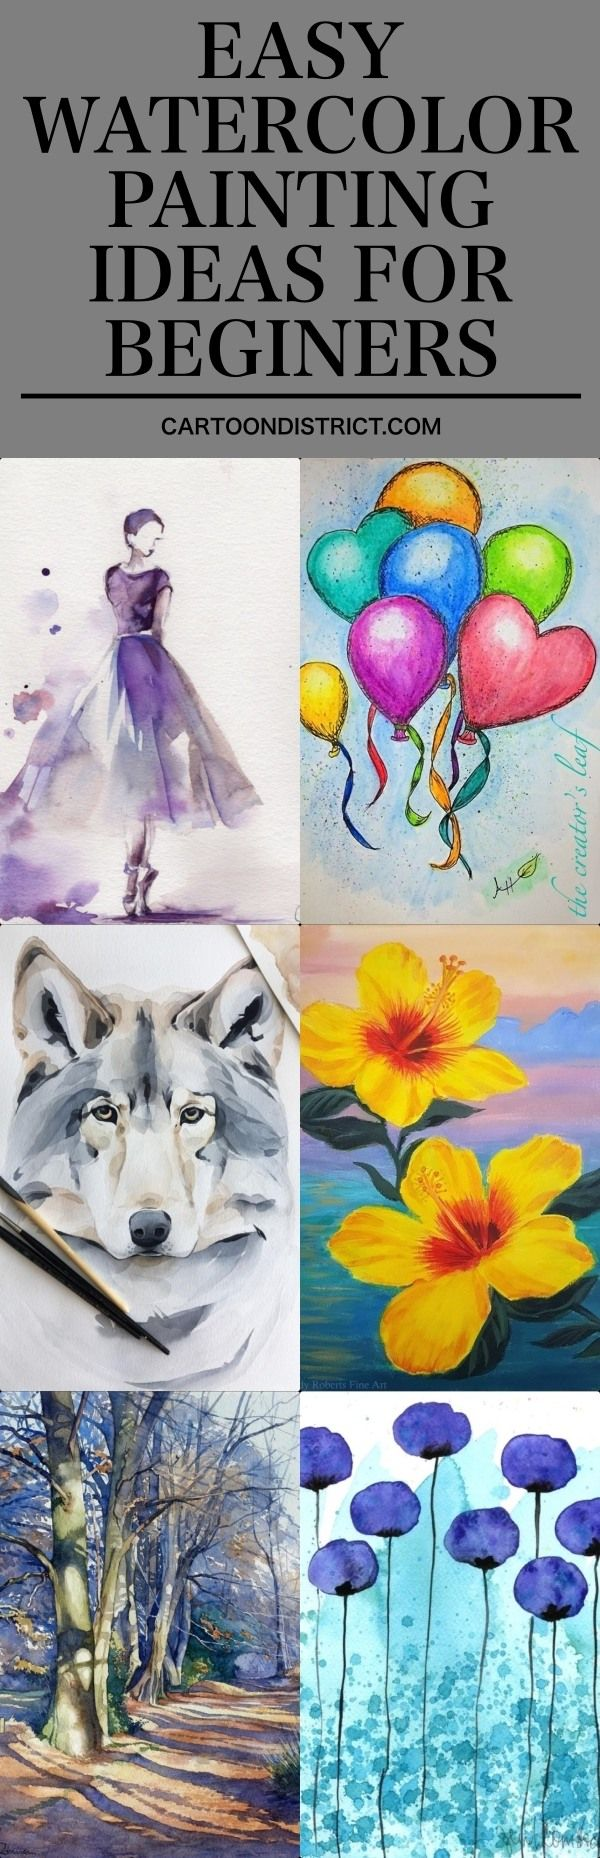 100 Easy Watercolor Painting Ideas for Beginners #easywatercolorpaintings